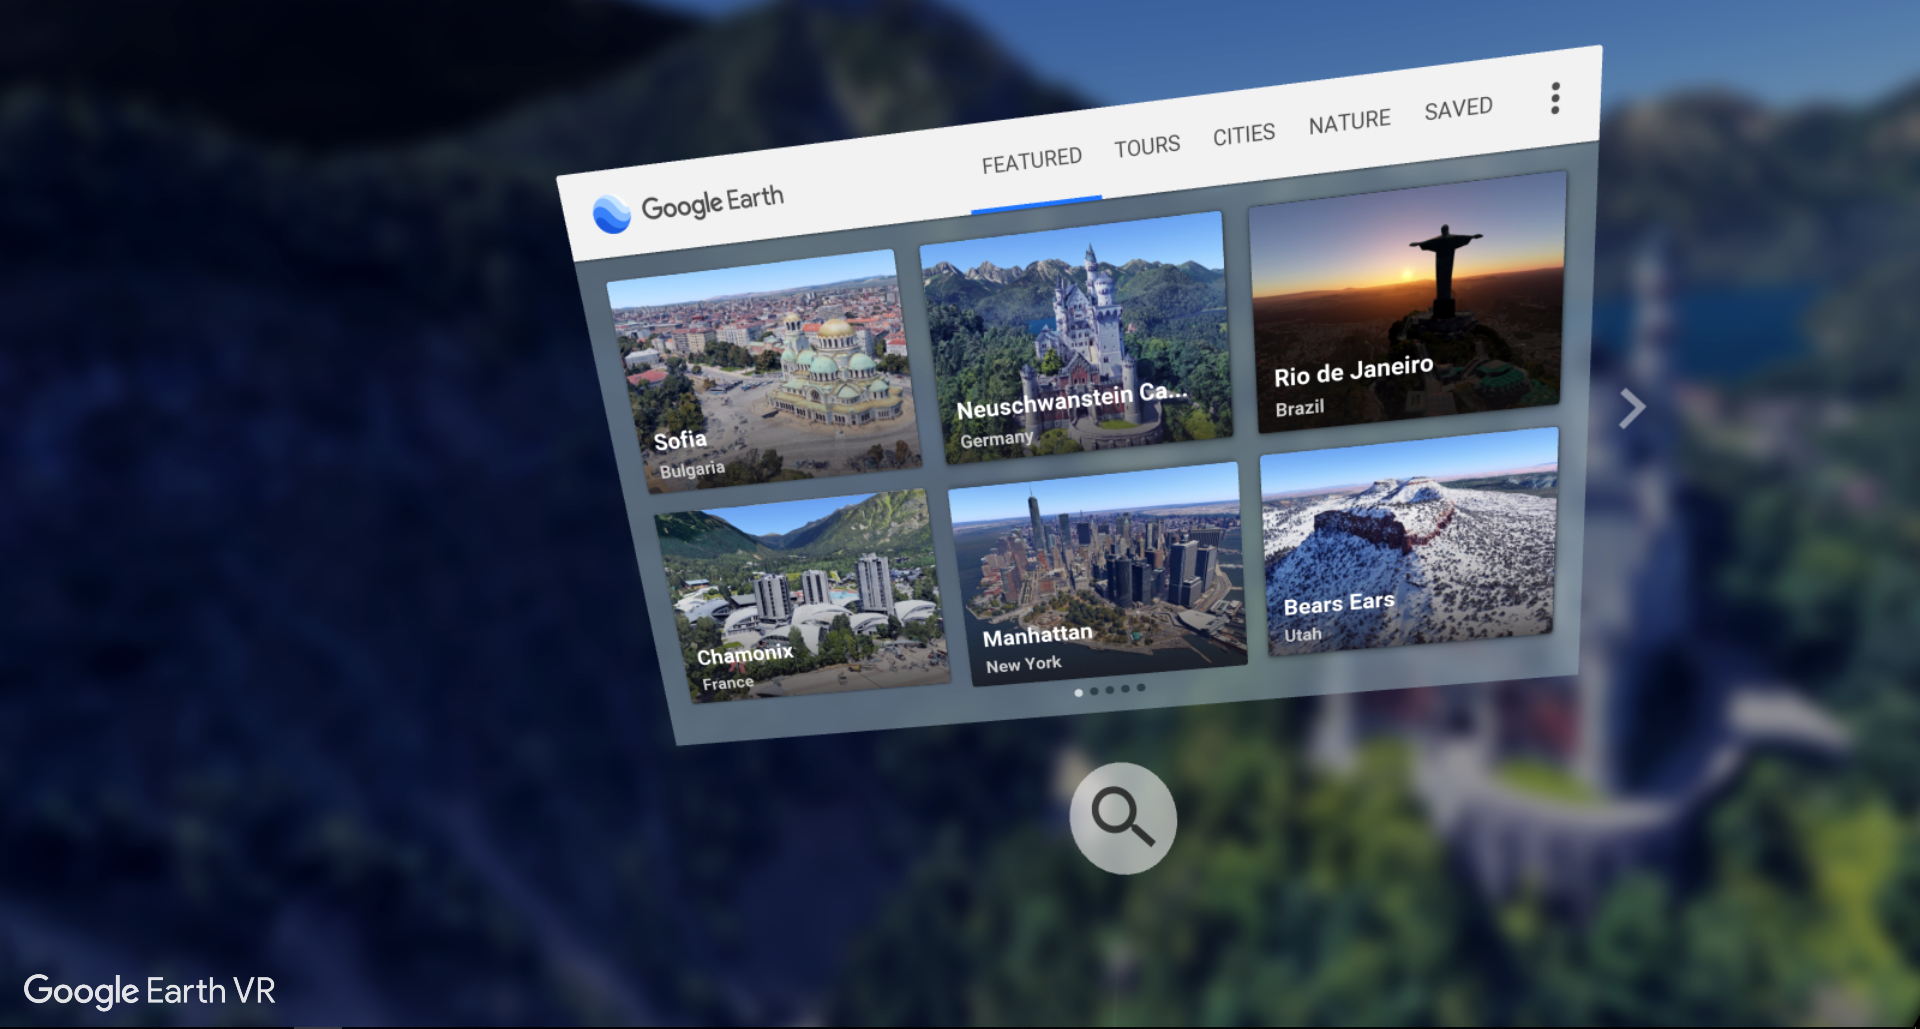 Google Earth VR Navigation & Search Menu